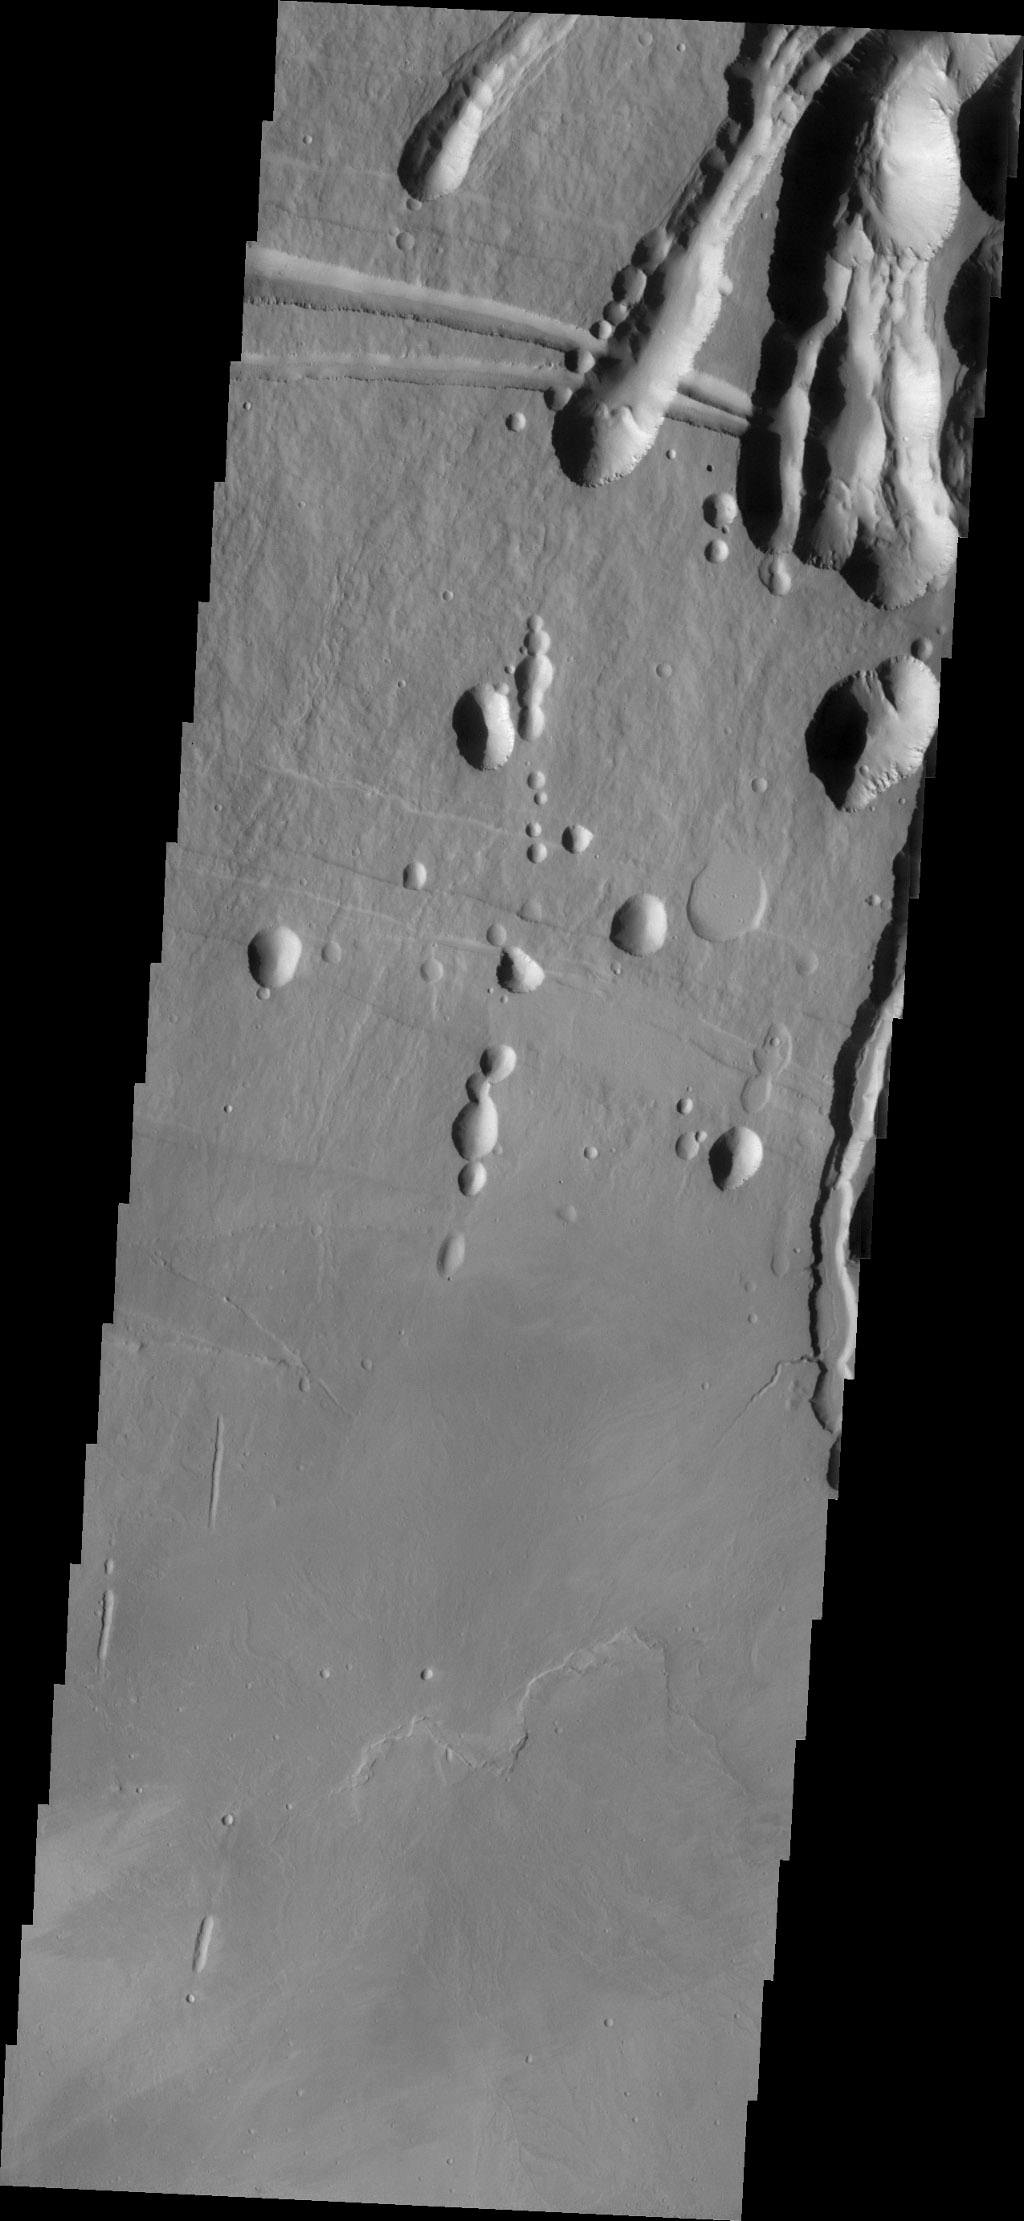 The three large aligned Tharsis volcanoes are Arsia Mons, Pavonis Mons and Ascreaus Mons (from south to north). This image from NASA's 2001 Mars Odyssey spacecraft shows part of the northeastern flank of Arsia Mons at the summit caldera.